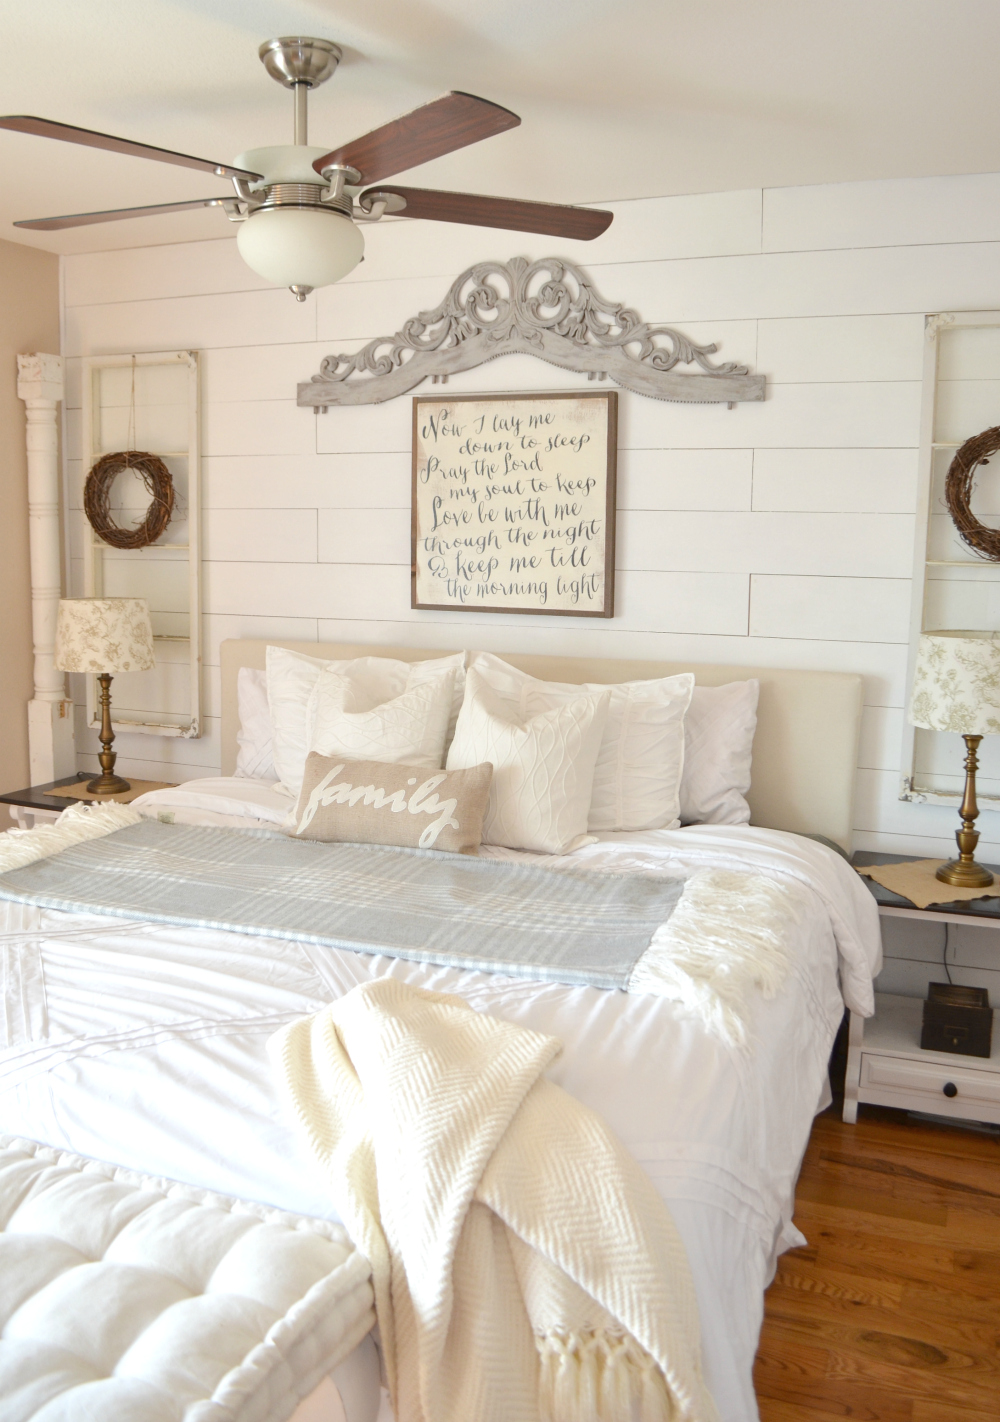 ideas floral yourself headboard headboards vintage make slideshow your bob easy diy to vila projects bed